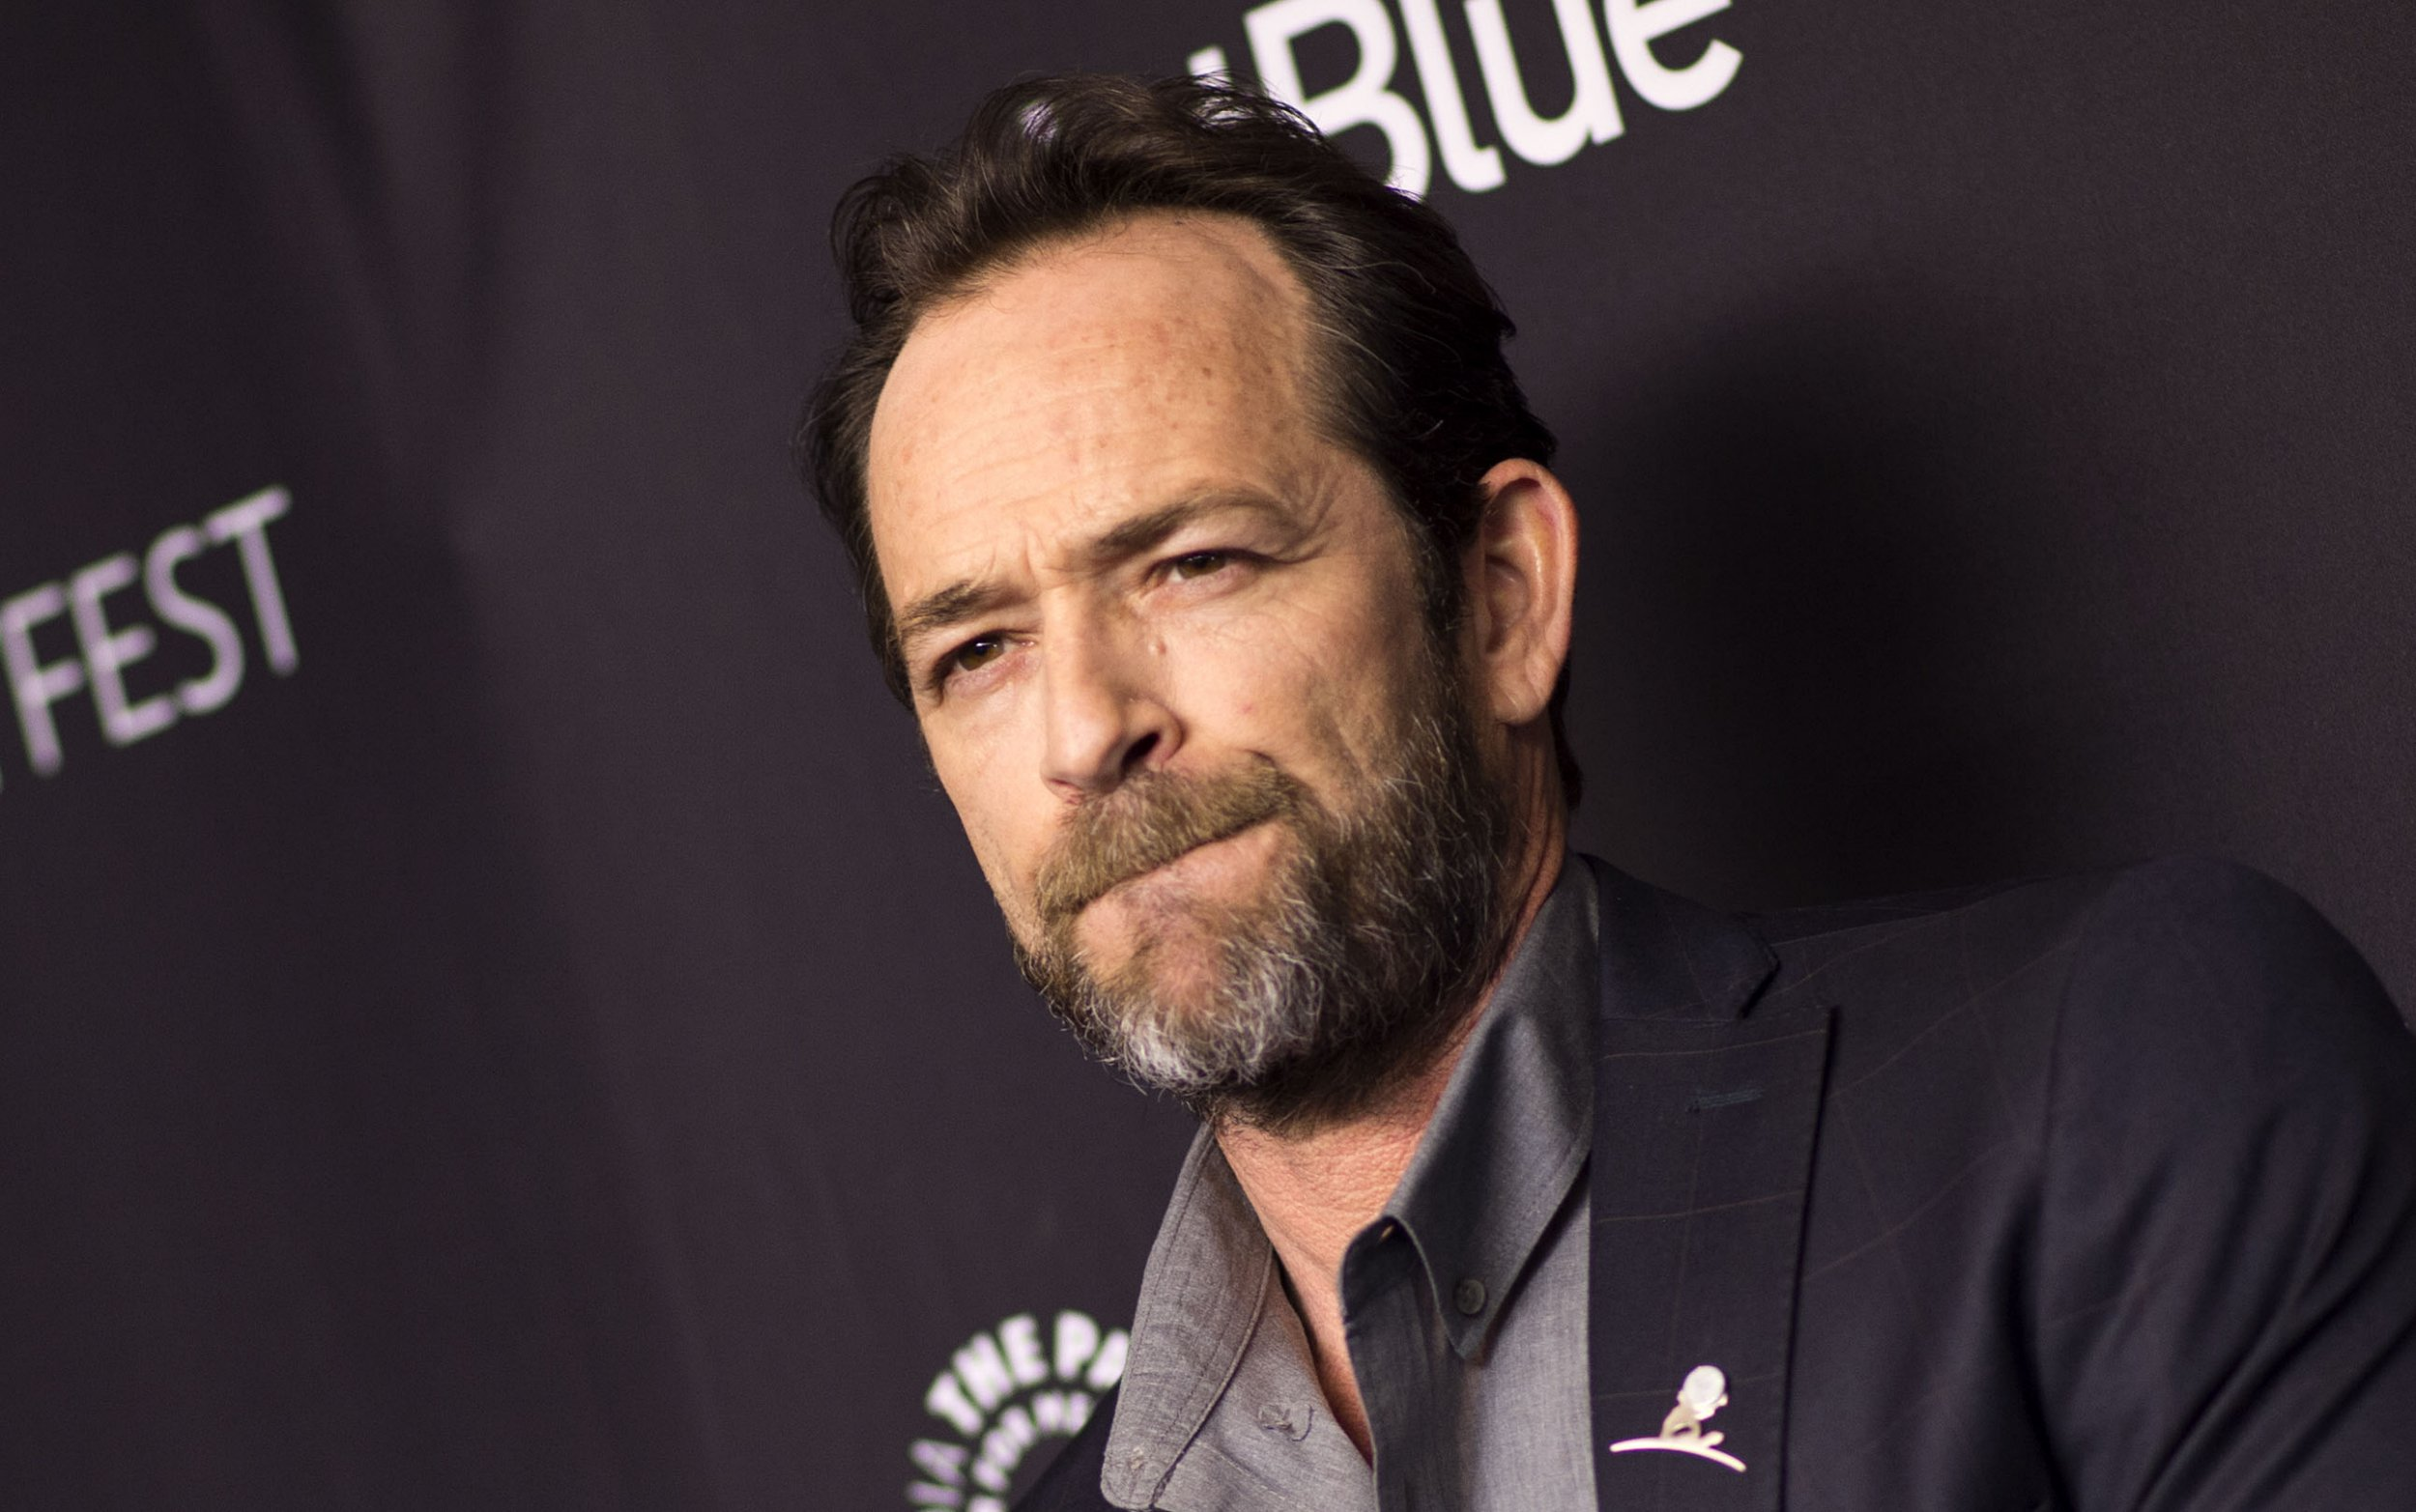 """(FILES) In this file photo taken on March 25, 2018 Actor Luke Perry attends The 2018 PaleyFest screening of """"Riverdale"""" at the Dolby Theater in Hollywood, California. - Actor Luke Perry has been hospitalized after reportedly suffering a massive stroke, US media said February 28, 2019. The """"Beverly Hills, 90210"""" star was rushed to the hospital on Wednesday and remains under observation, his representative told various media outlets, declining to elaborate on the actor's condition.Perry, 52, had been in Los Angeles working on the television series """"Riverdale,"""" a comic book adaptation in which he plays Fred Andrews. (Photo by VALERIE MACON / AFP)VALERIE MACON/AFP/Getty Images"""